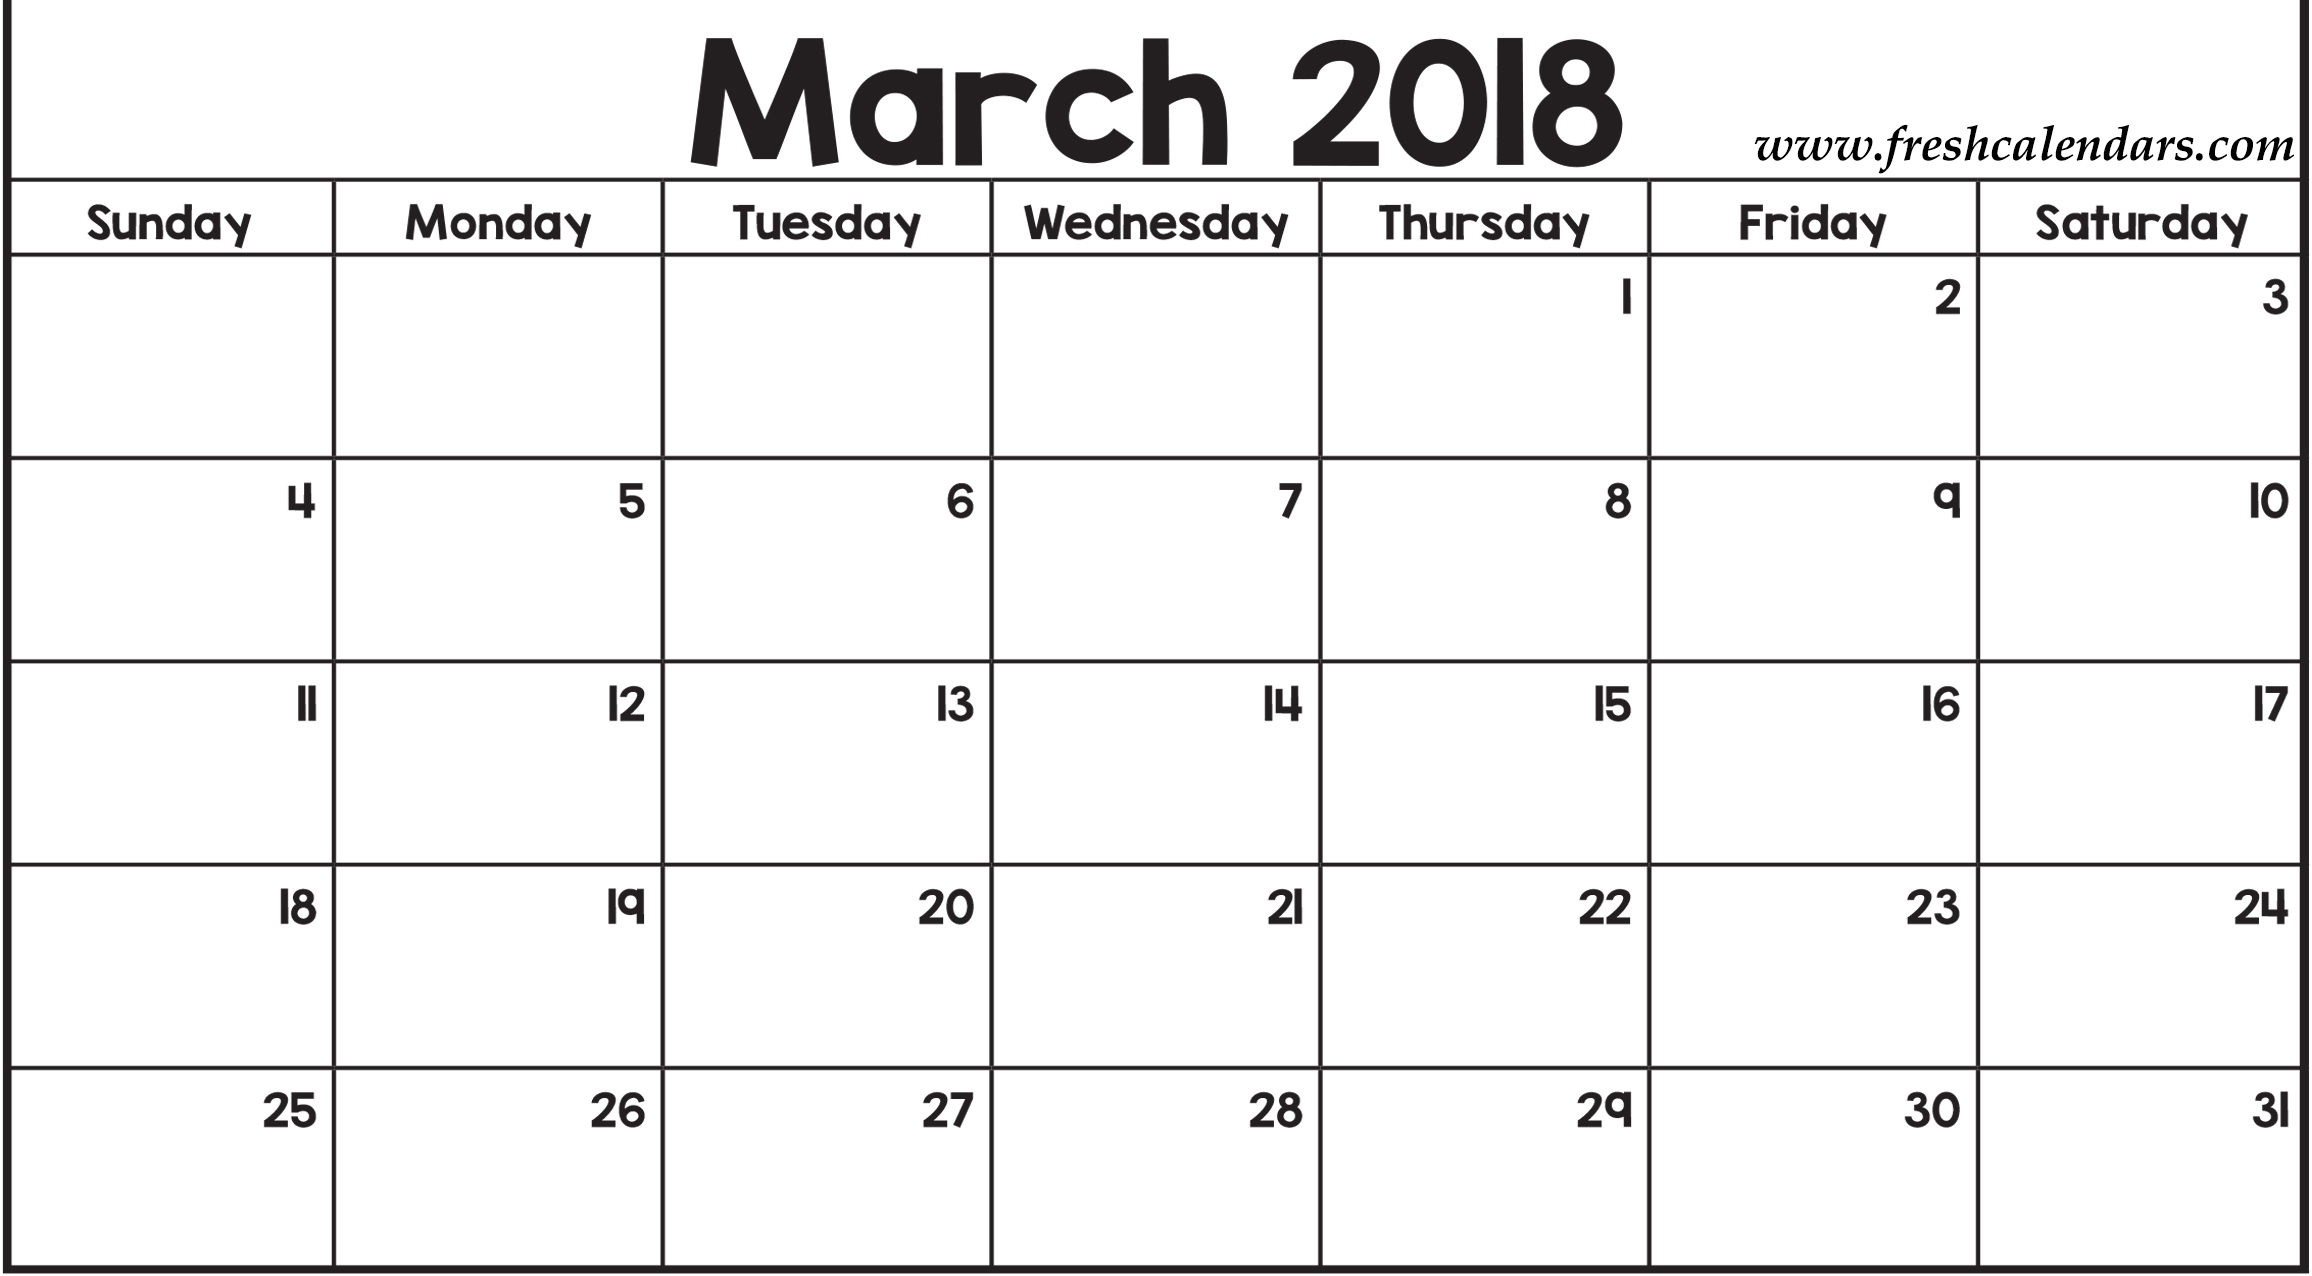 Calendar March 2018 Doc : Blank march calendar printable templates